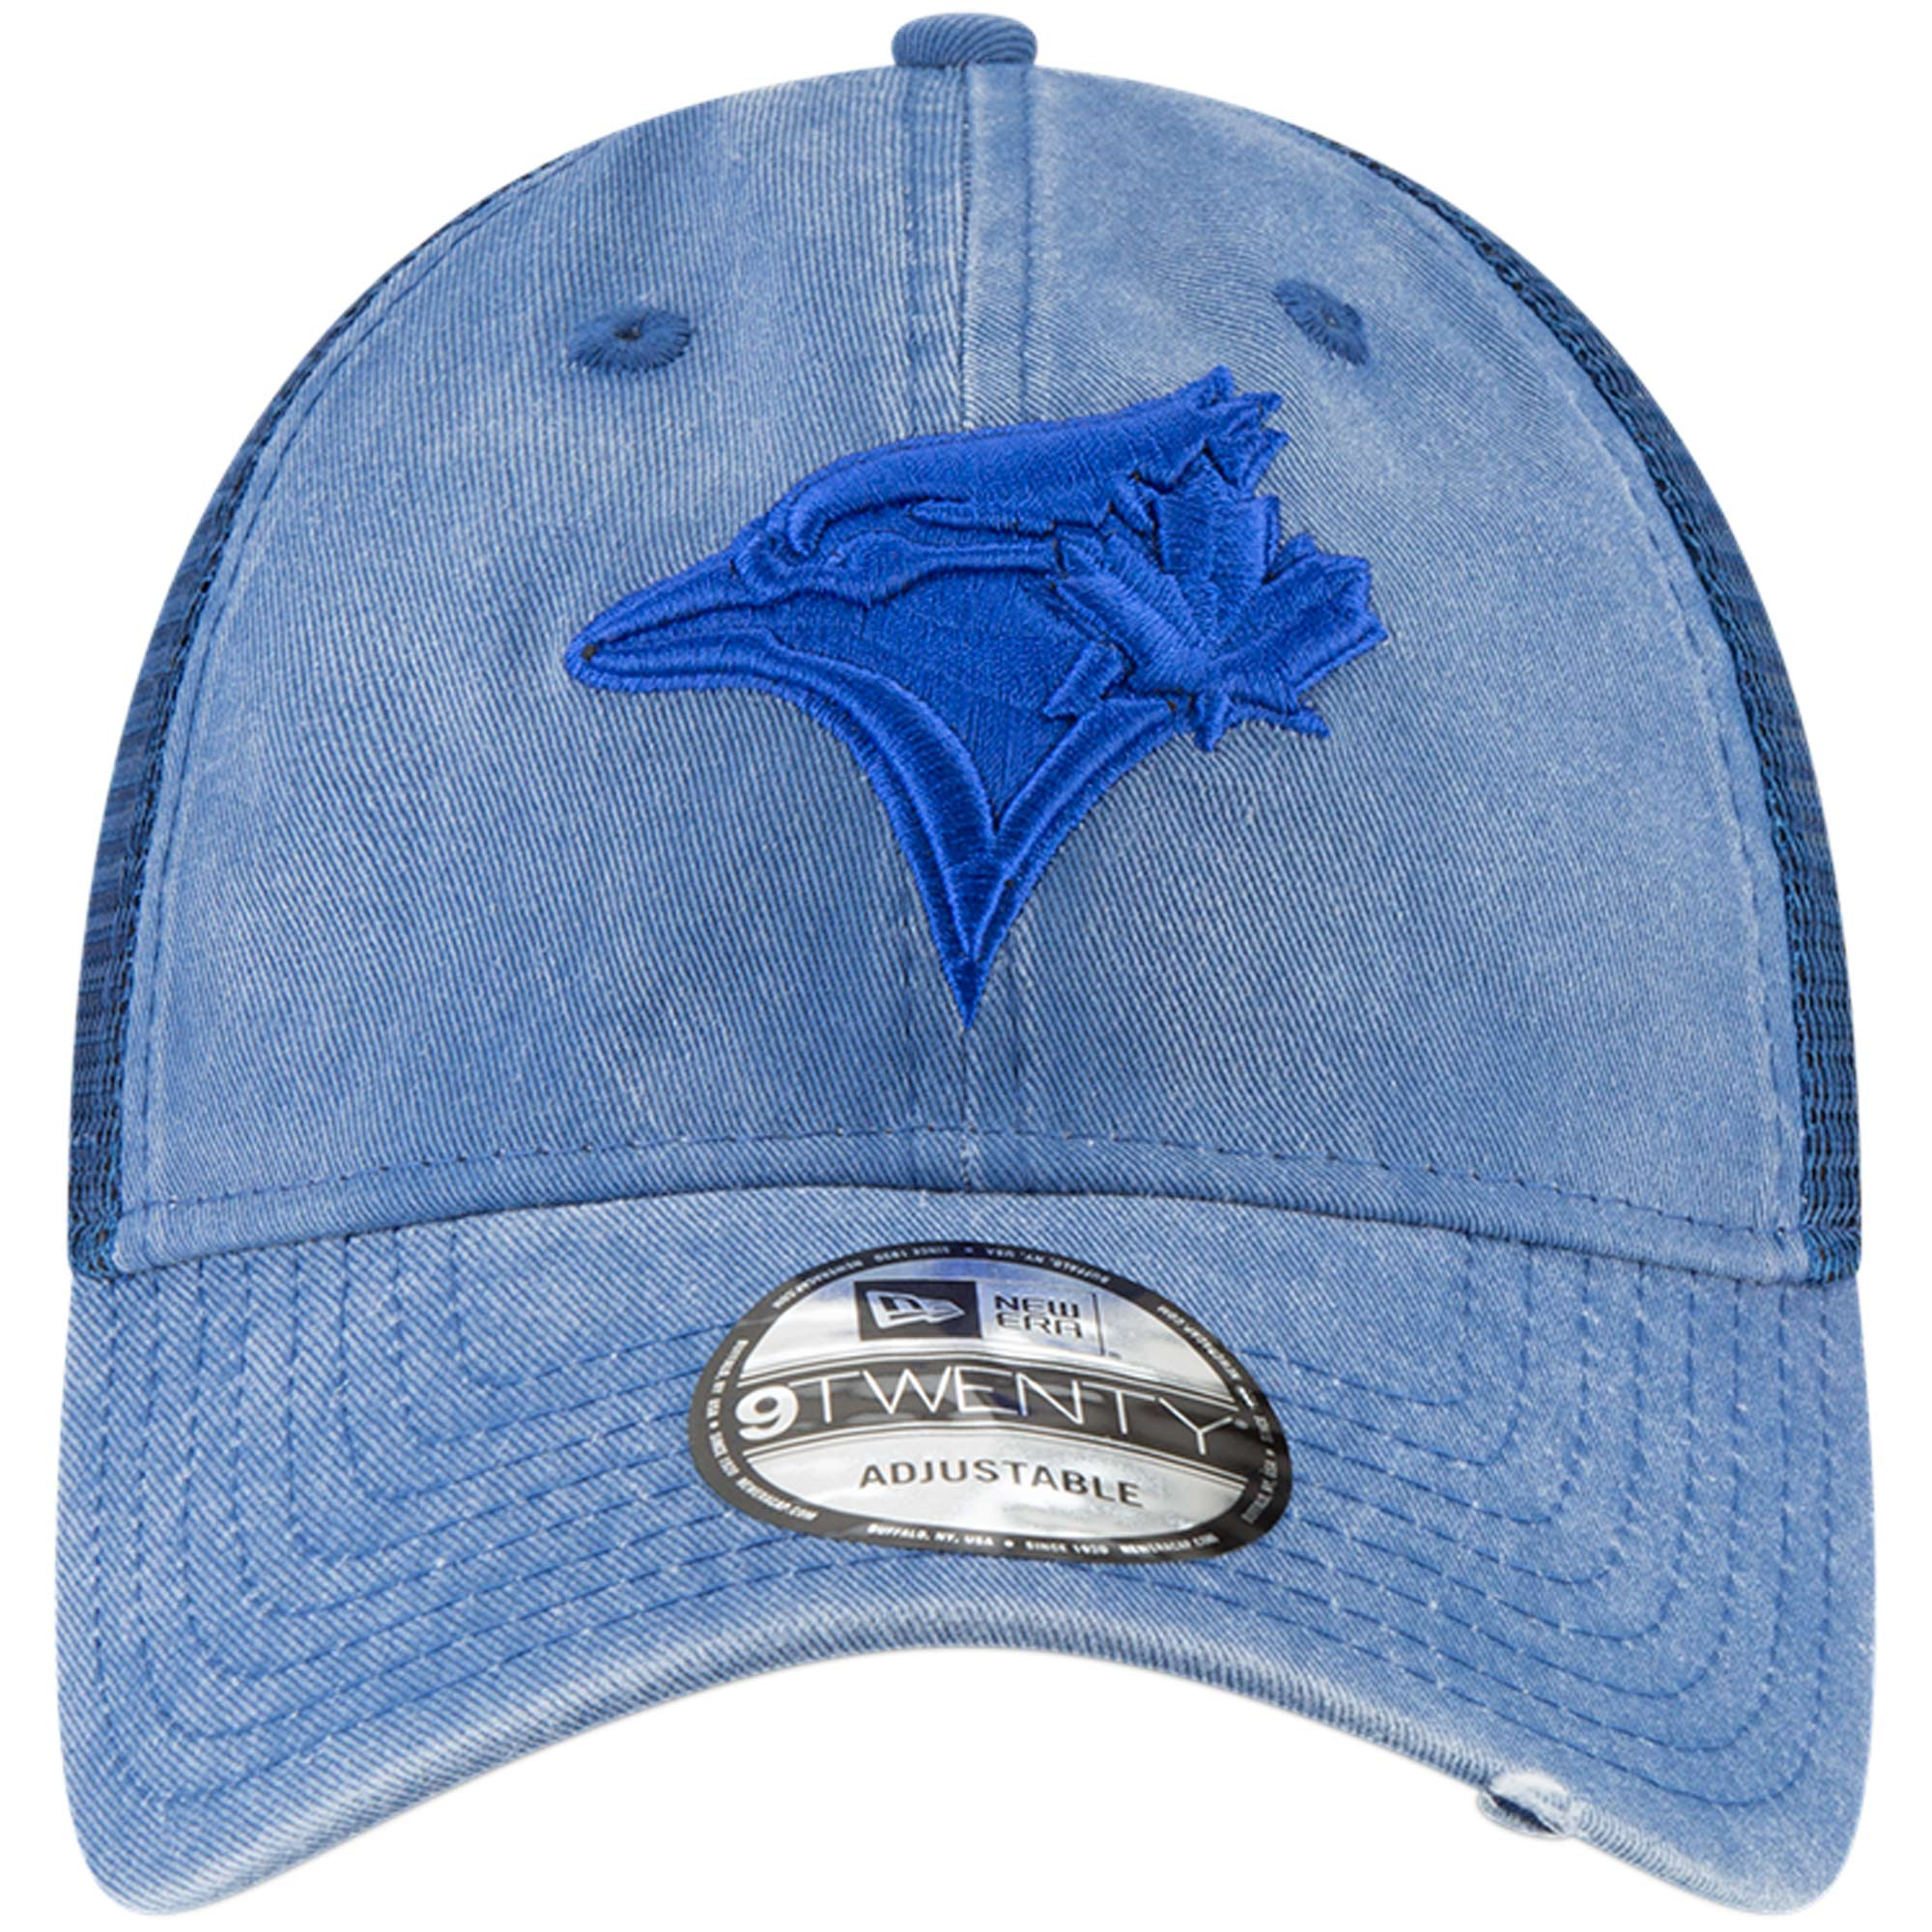 premium selection 3718b 057a4 ... uk toronto blue jays new era tonal washed 9twenty adjustable hat royal  osfa walmart 7b9ab 943db